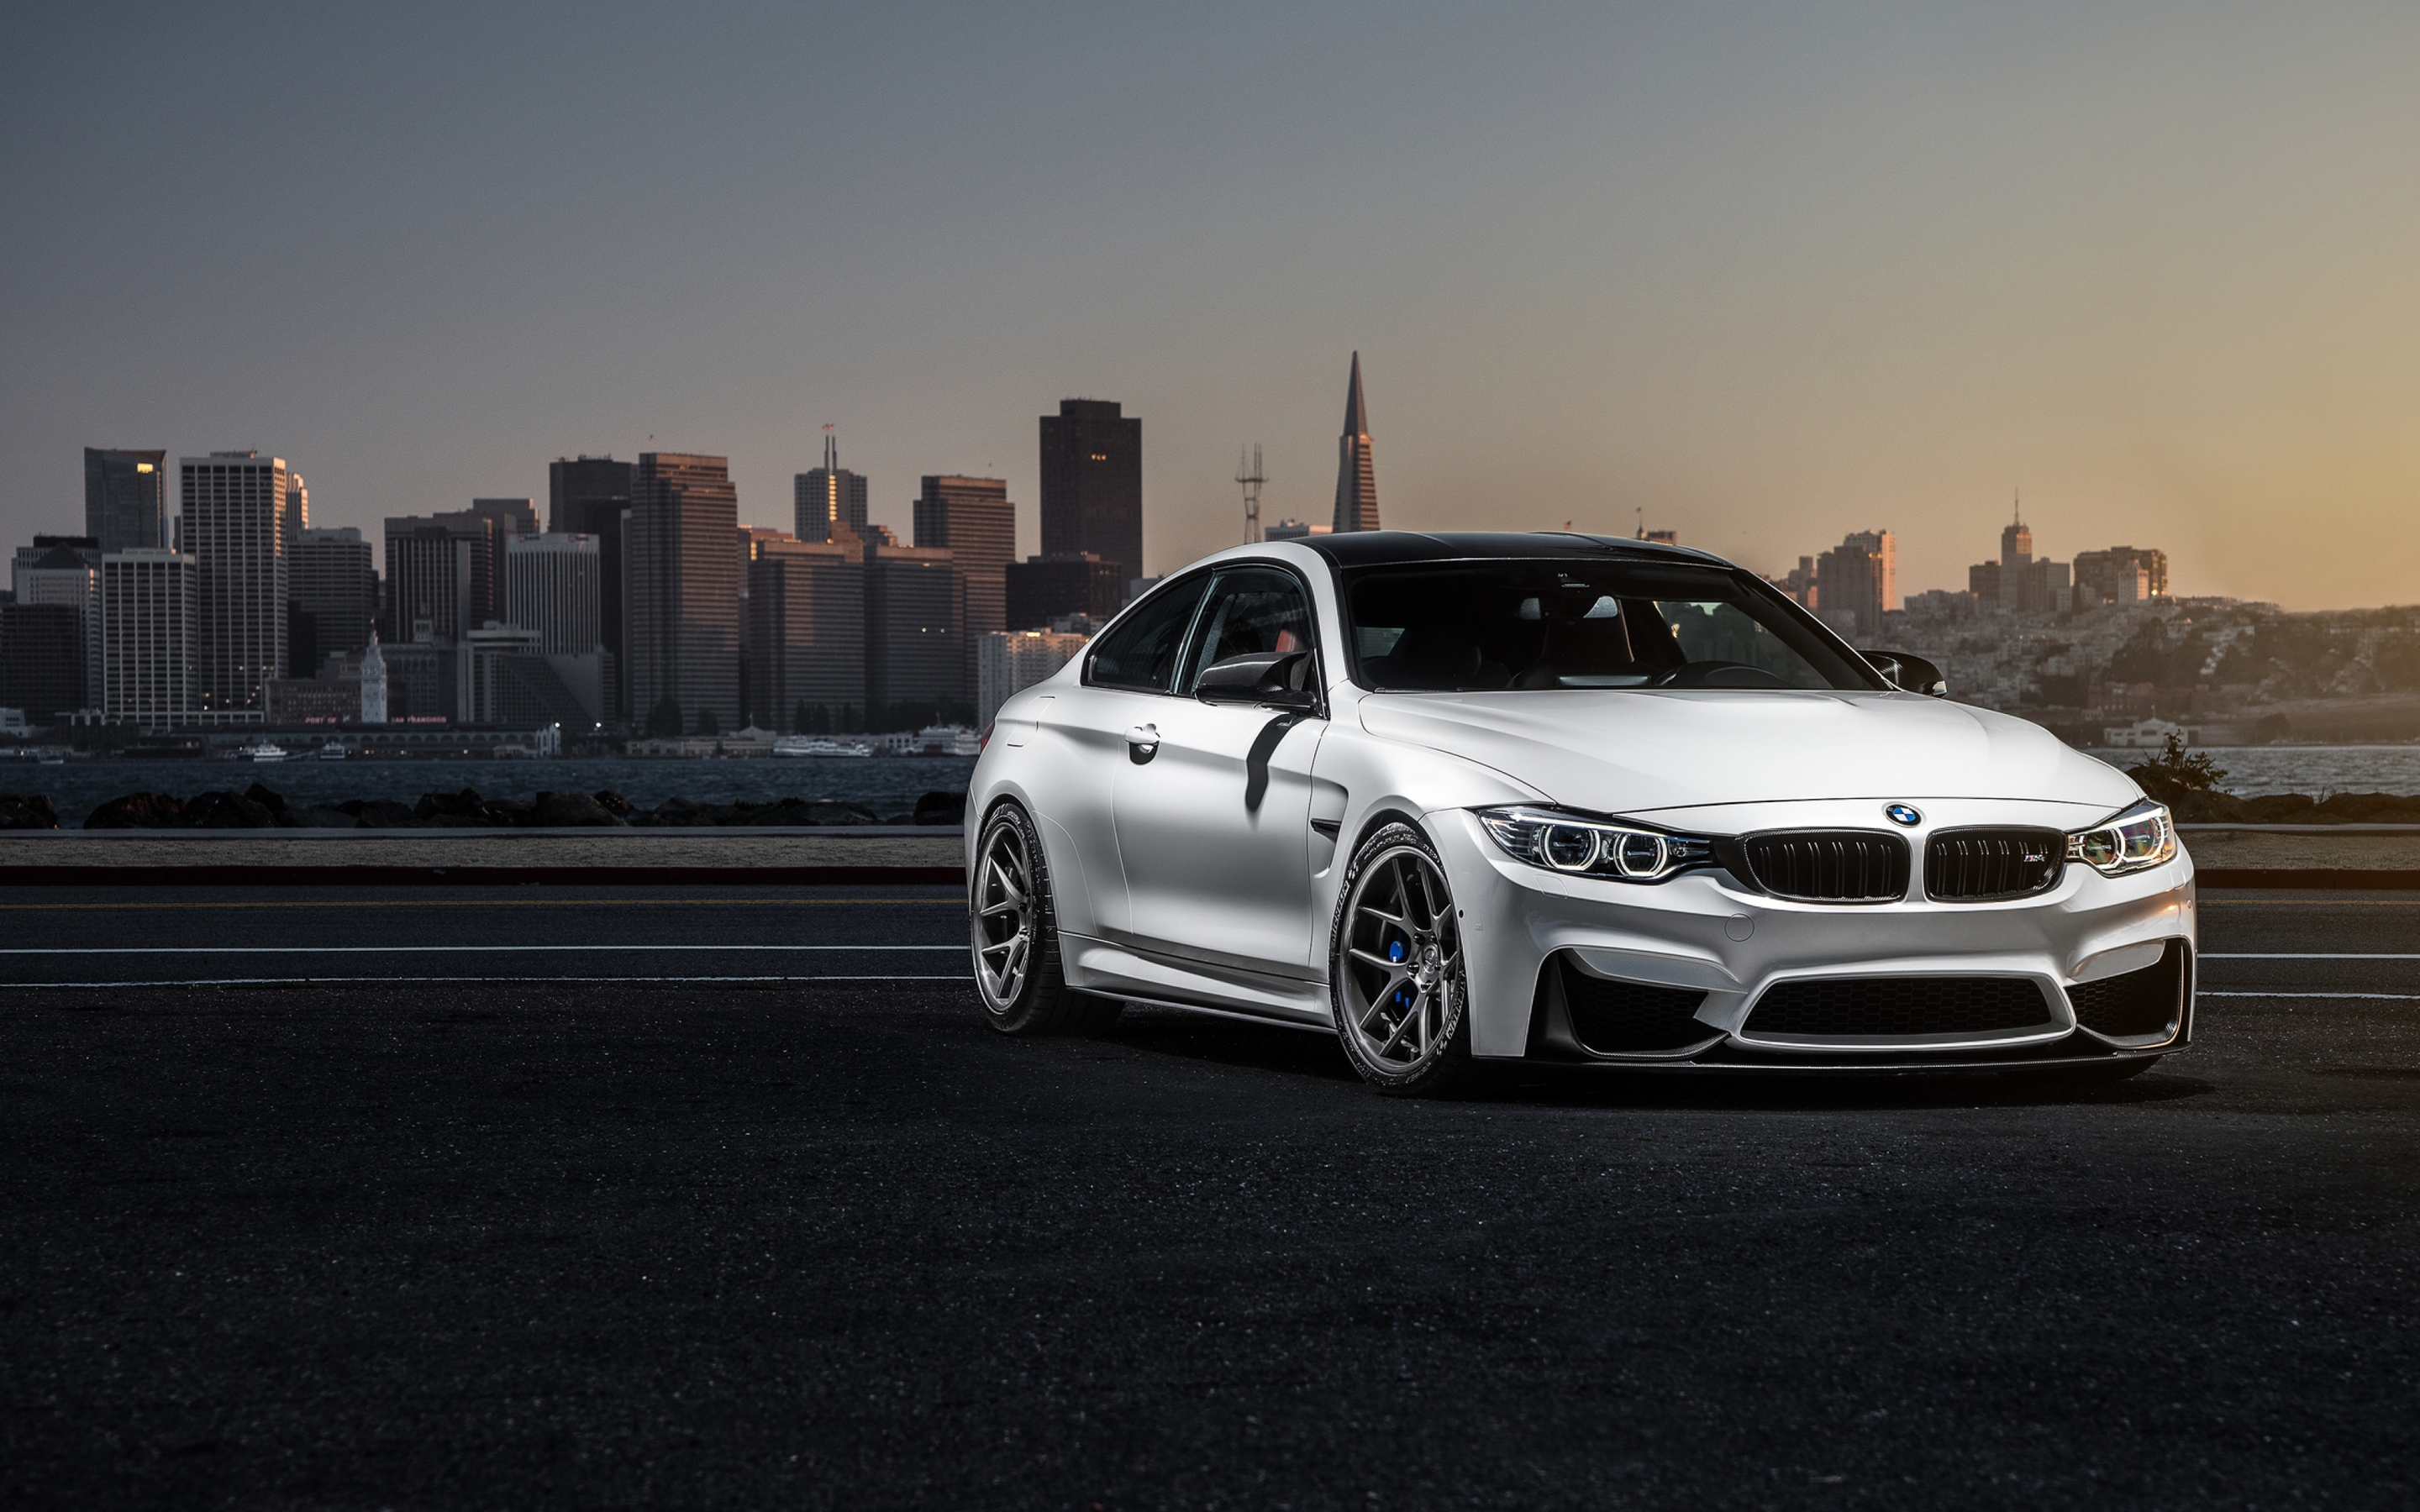 2880x1800 Bmw M4 Macbook Pro Retina HD 4k Wallpapers Images Backgrounds Photos And Pictures